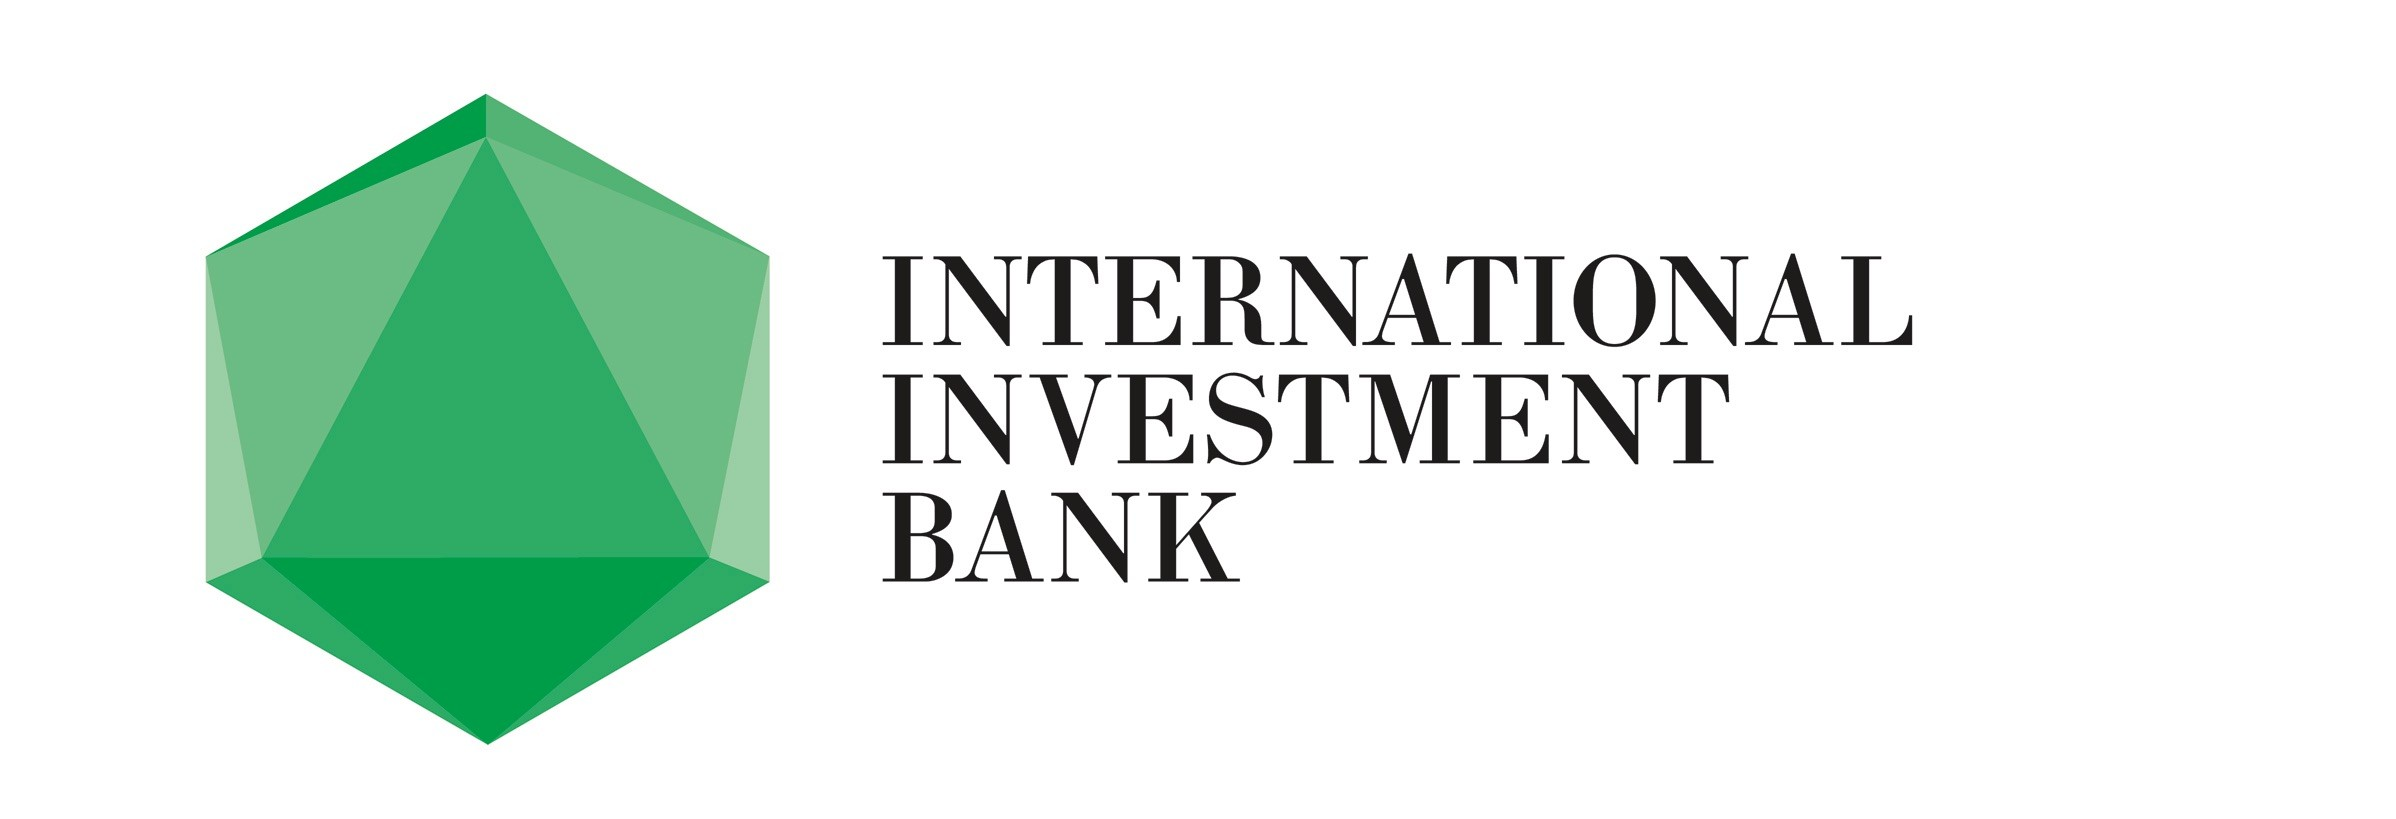 IIB Places A New CZK-Denominated Bond Under The MTN Programme